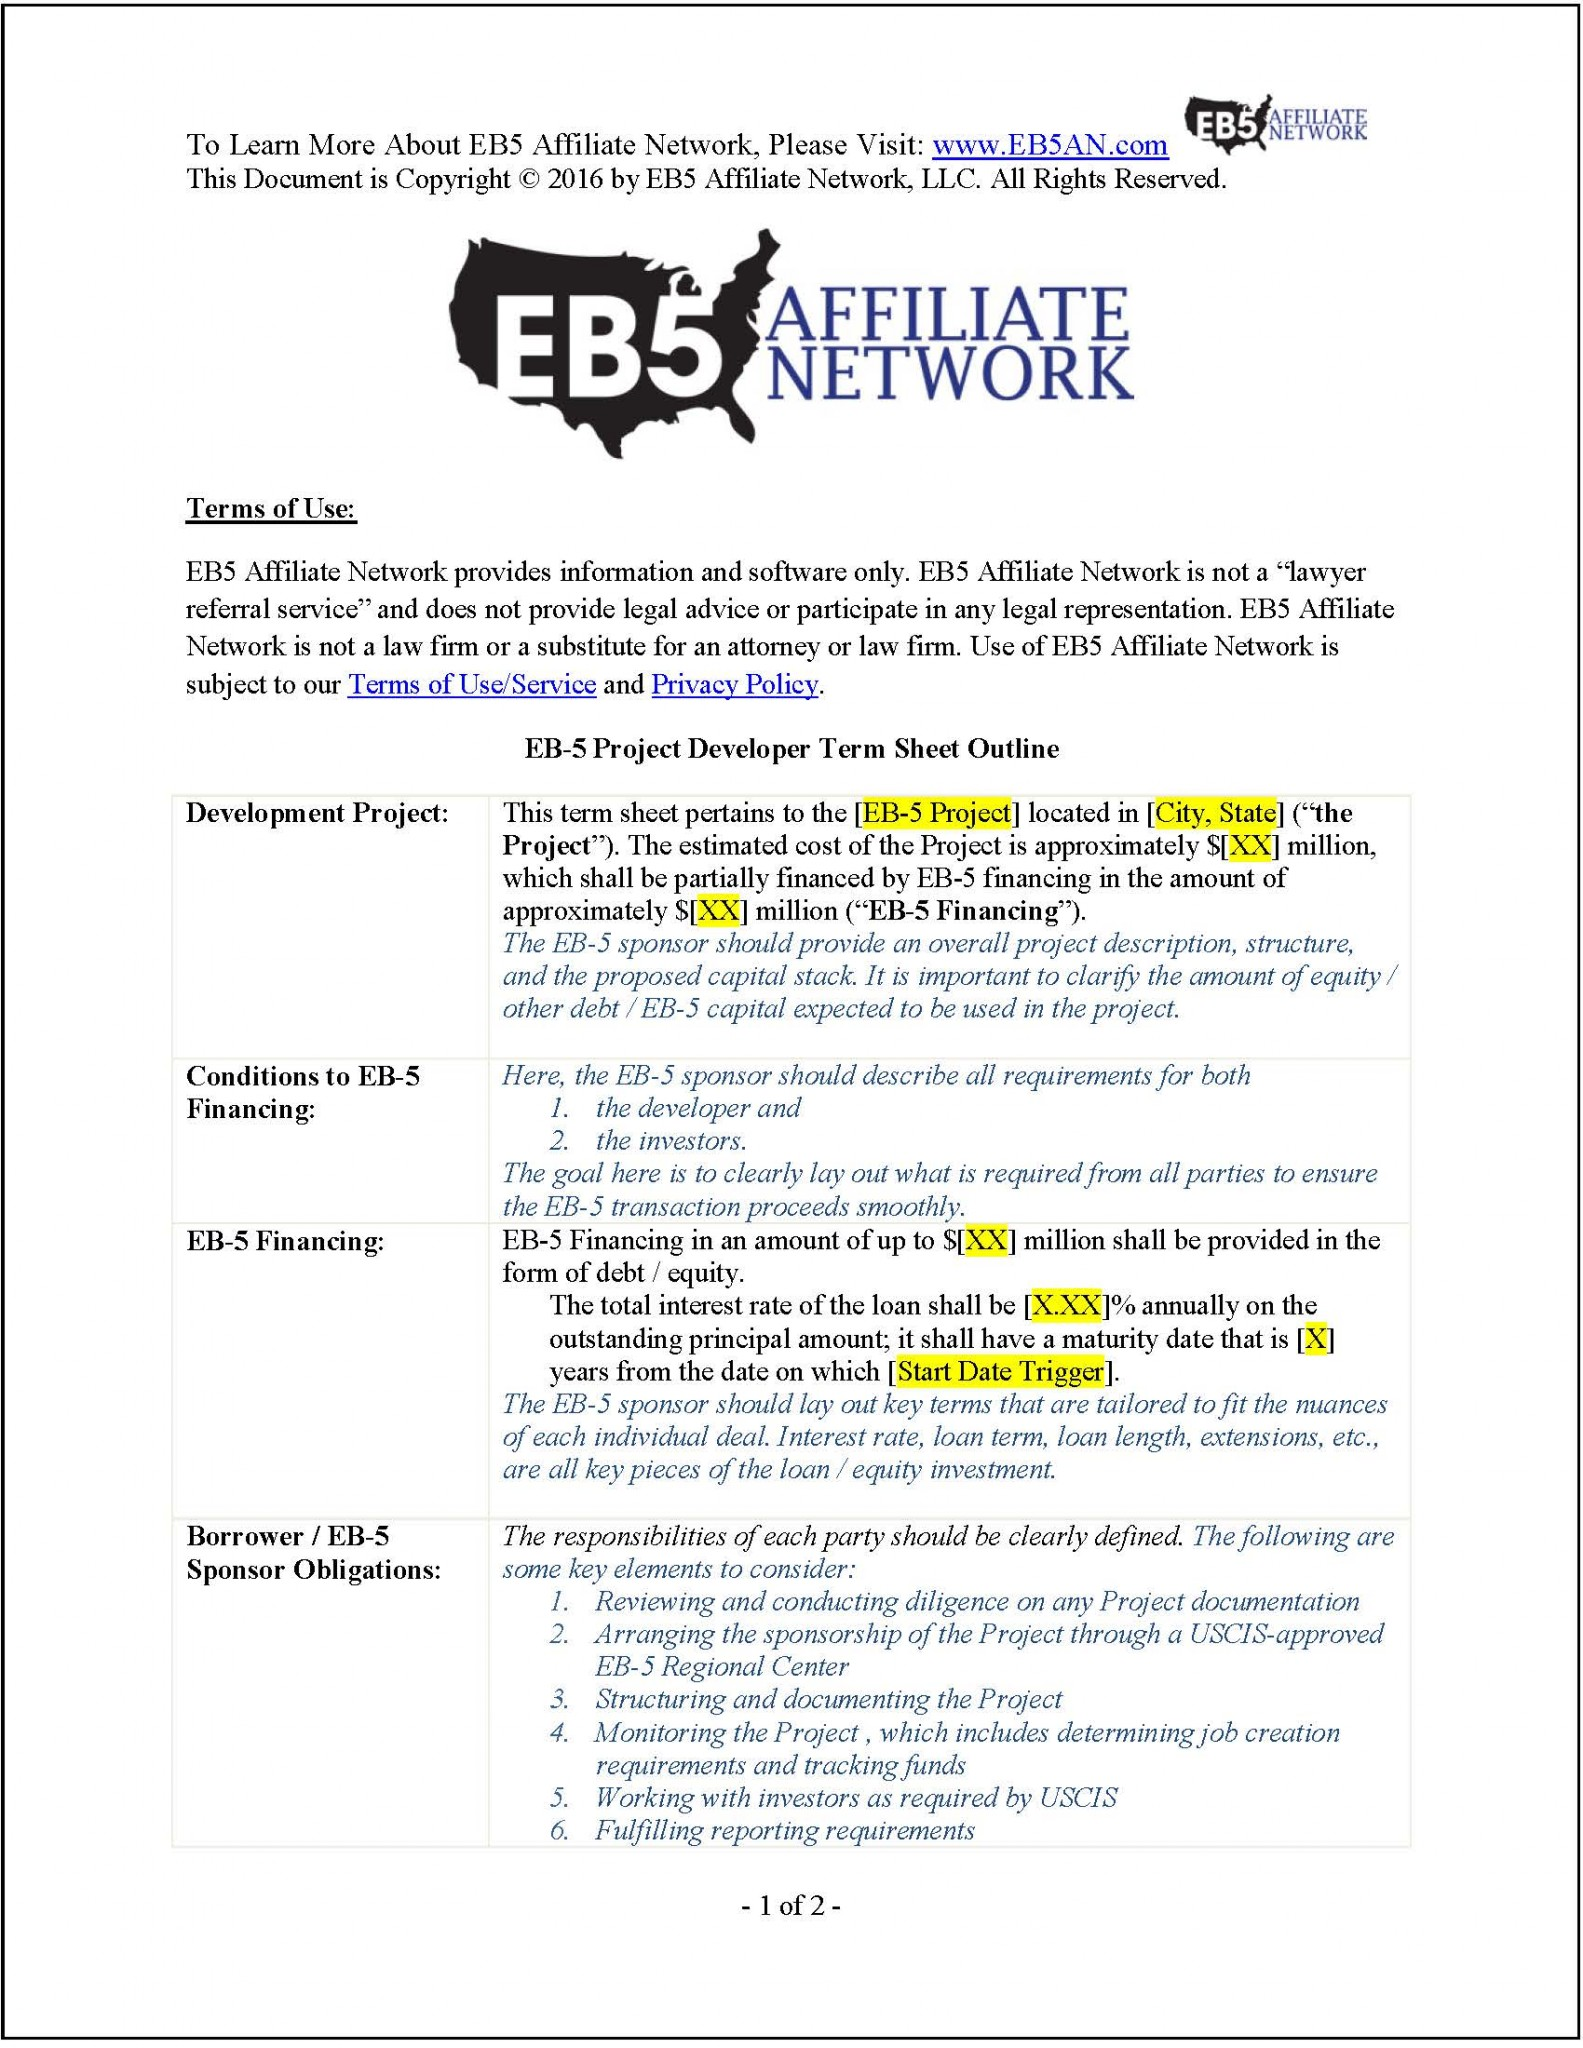 Sample EB-5 Project Developer Term Sheet